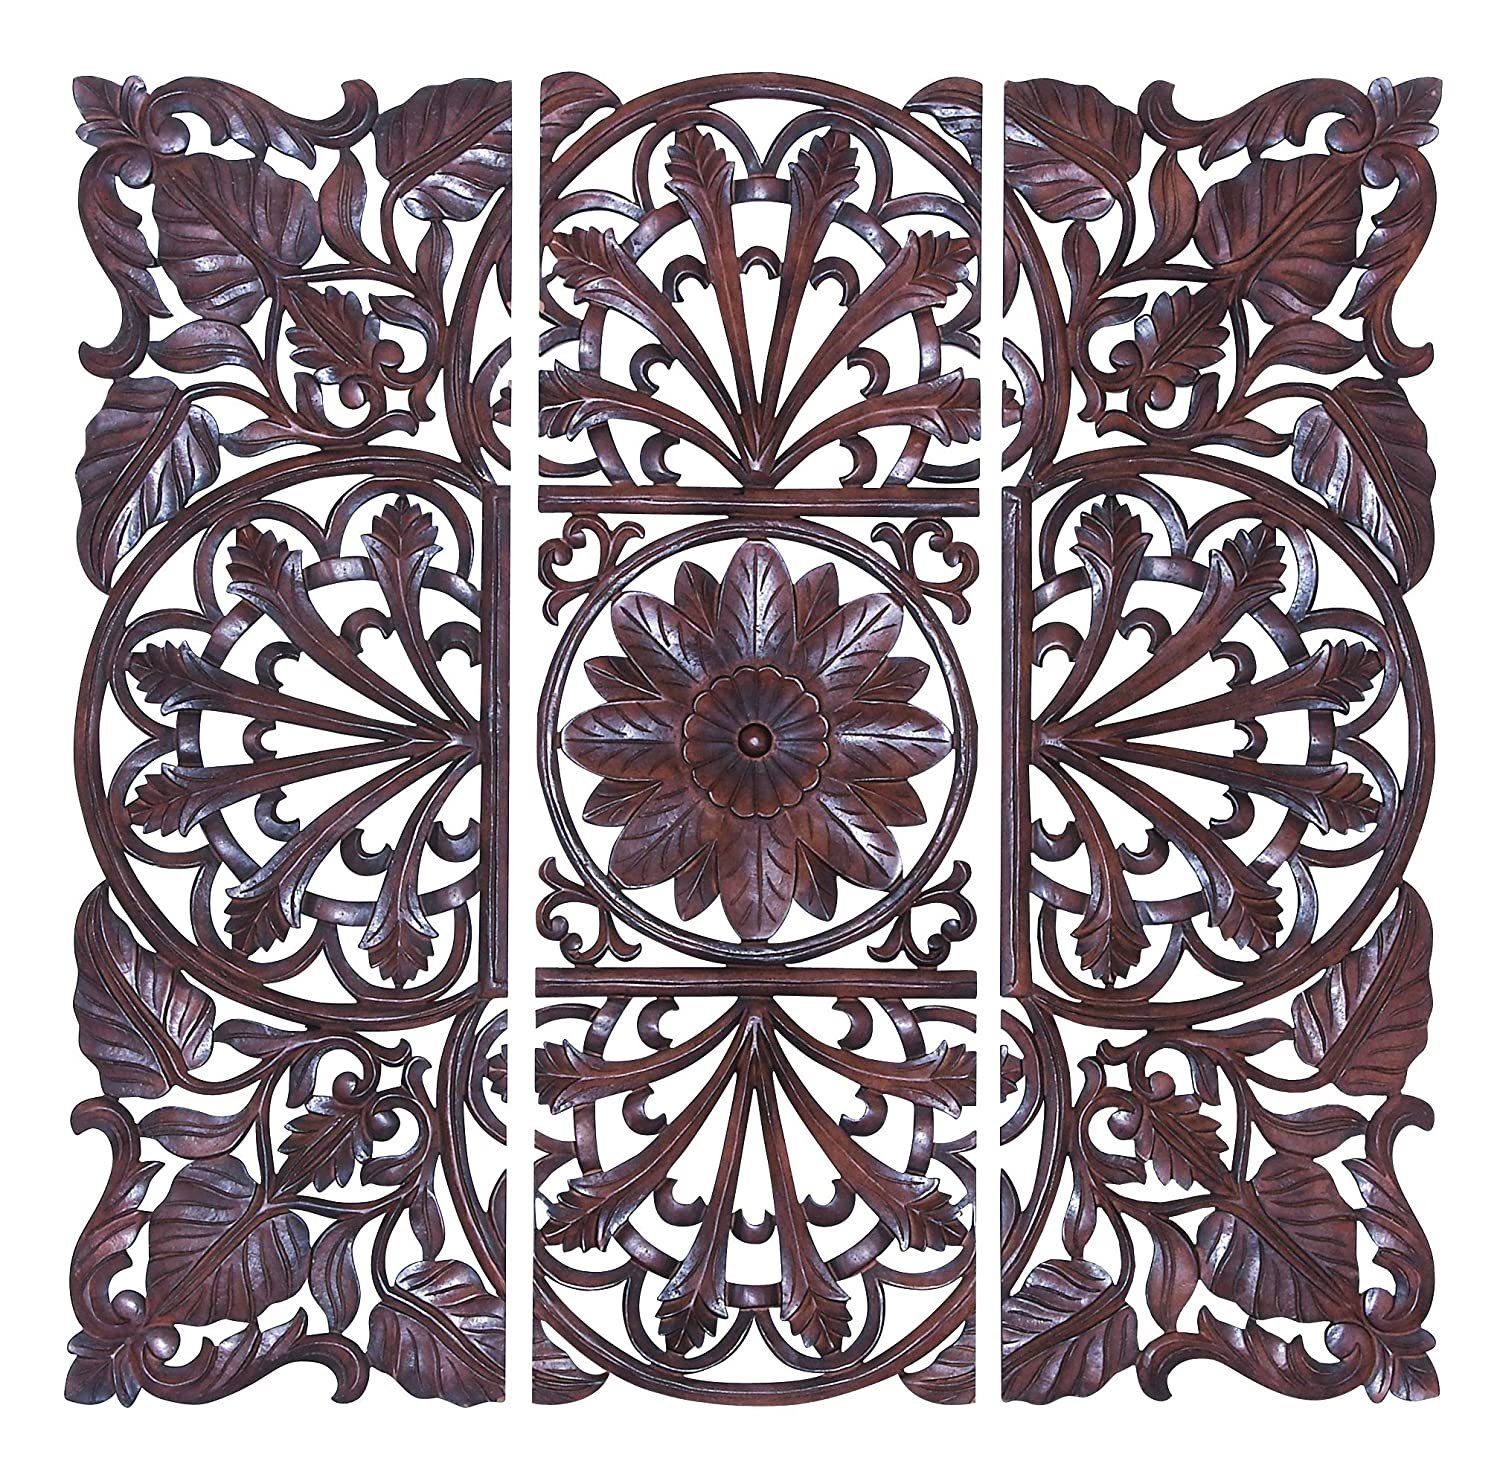 Wooden Wall Art Panels Part - 32: Amazon.com: Deco 79 Wooden Wall Plaque, Brown, Set Of 3: Home U0026 Kitchen